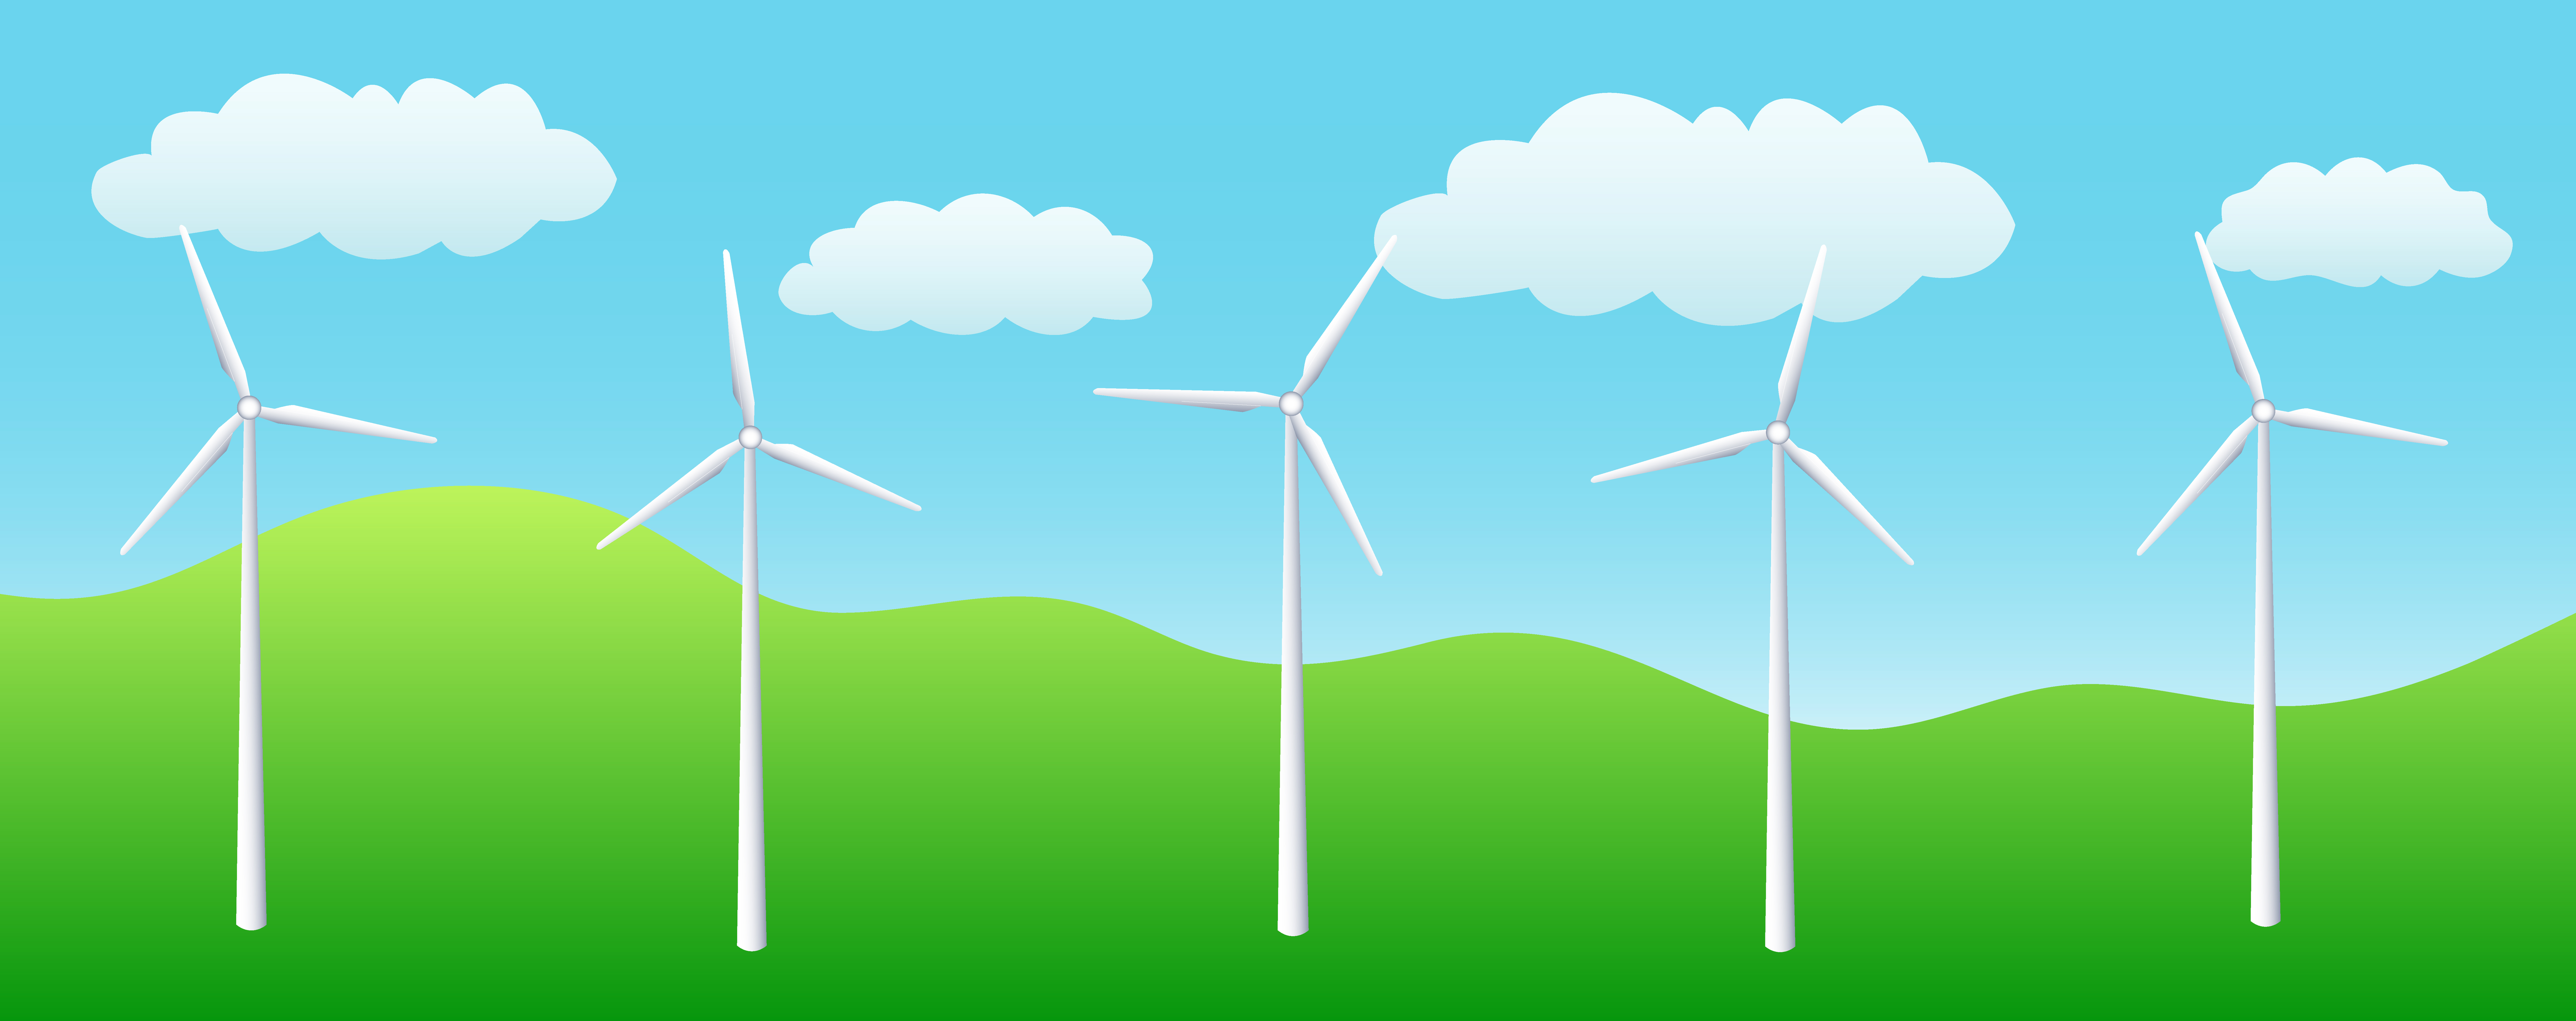 Wind power generation clipart Clipground